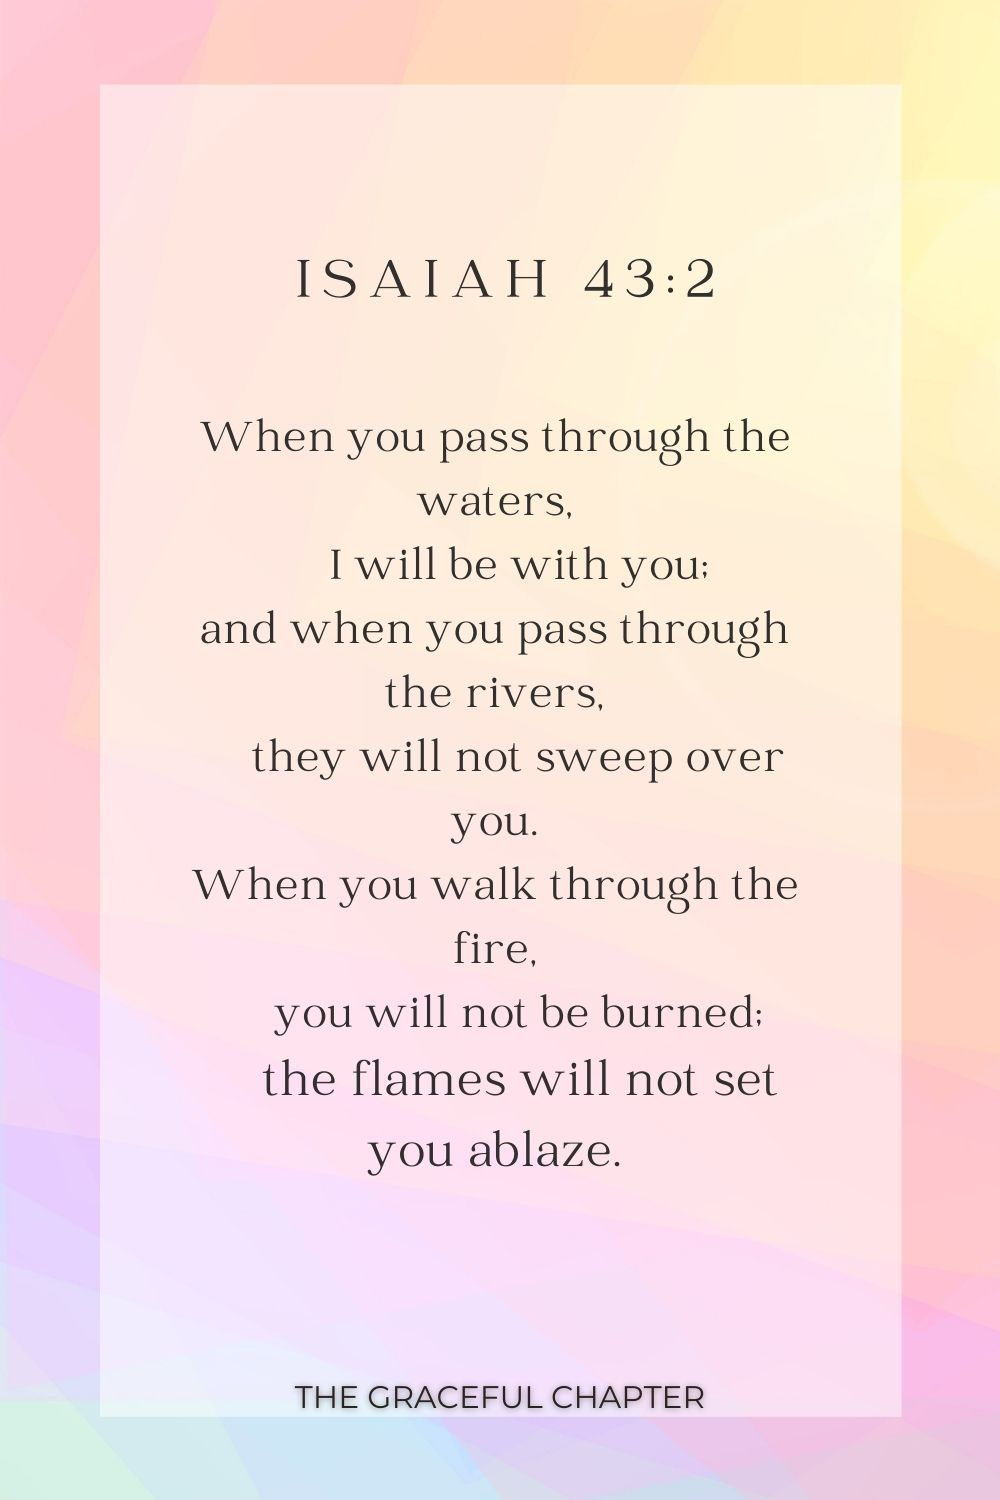 When you pass through the waters,     I will be with you; and when you pass through the rivers,     they will not sweep over you. When you walk through the fire,     you will not be burned;     the flames will not set you ablaze. Isaiah 43:2